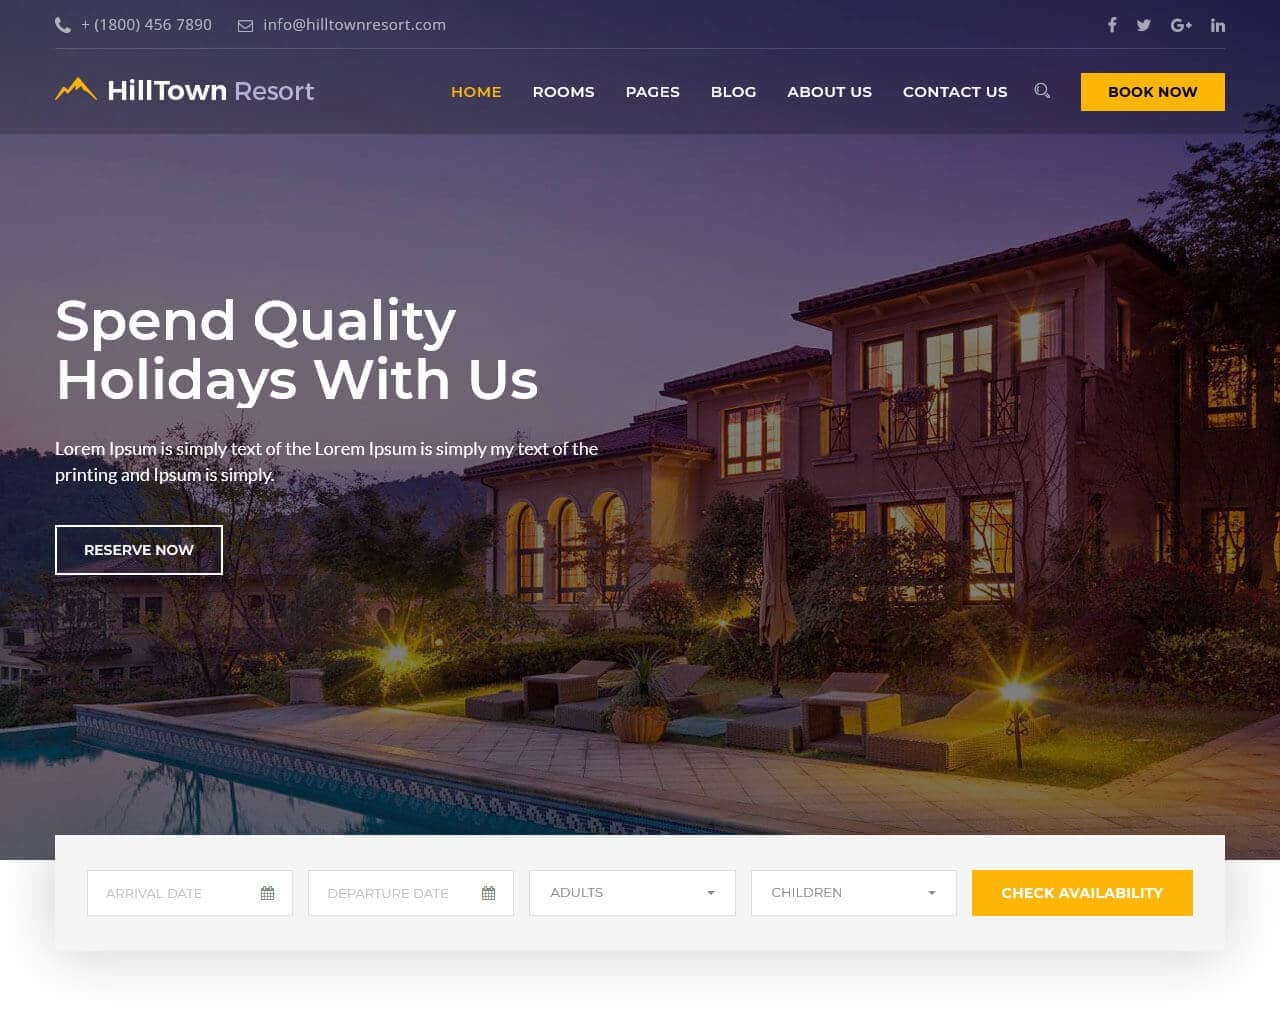 20 Hotel Website Templates to Build the Best Booking Website 2019